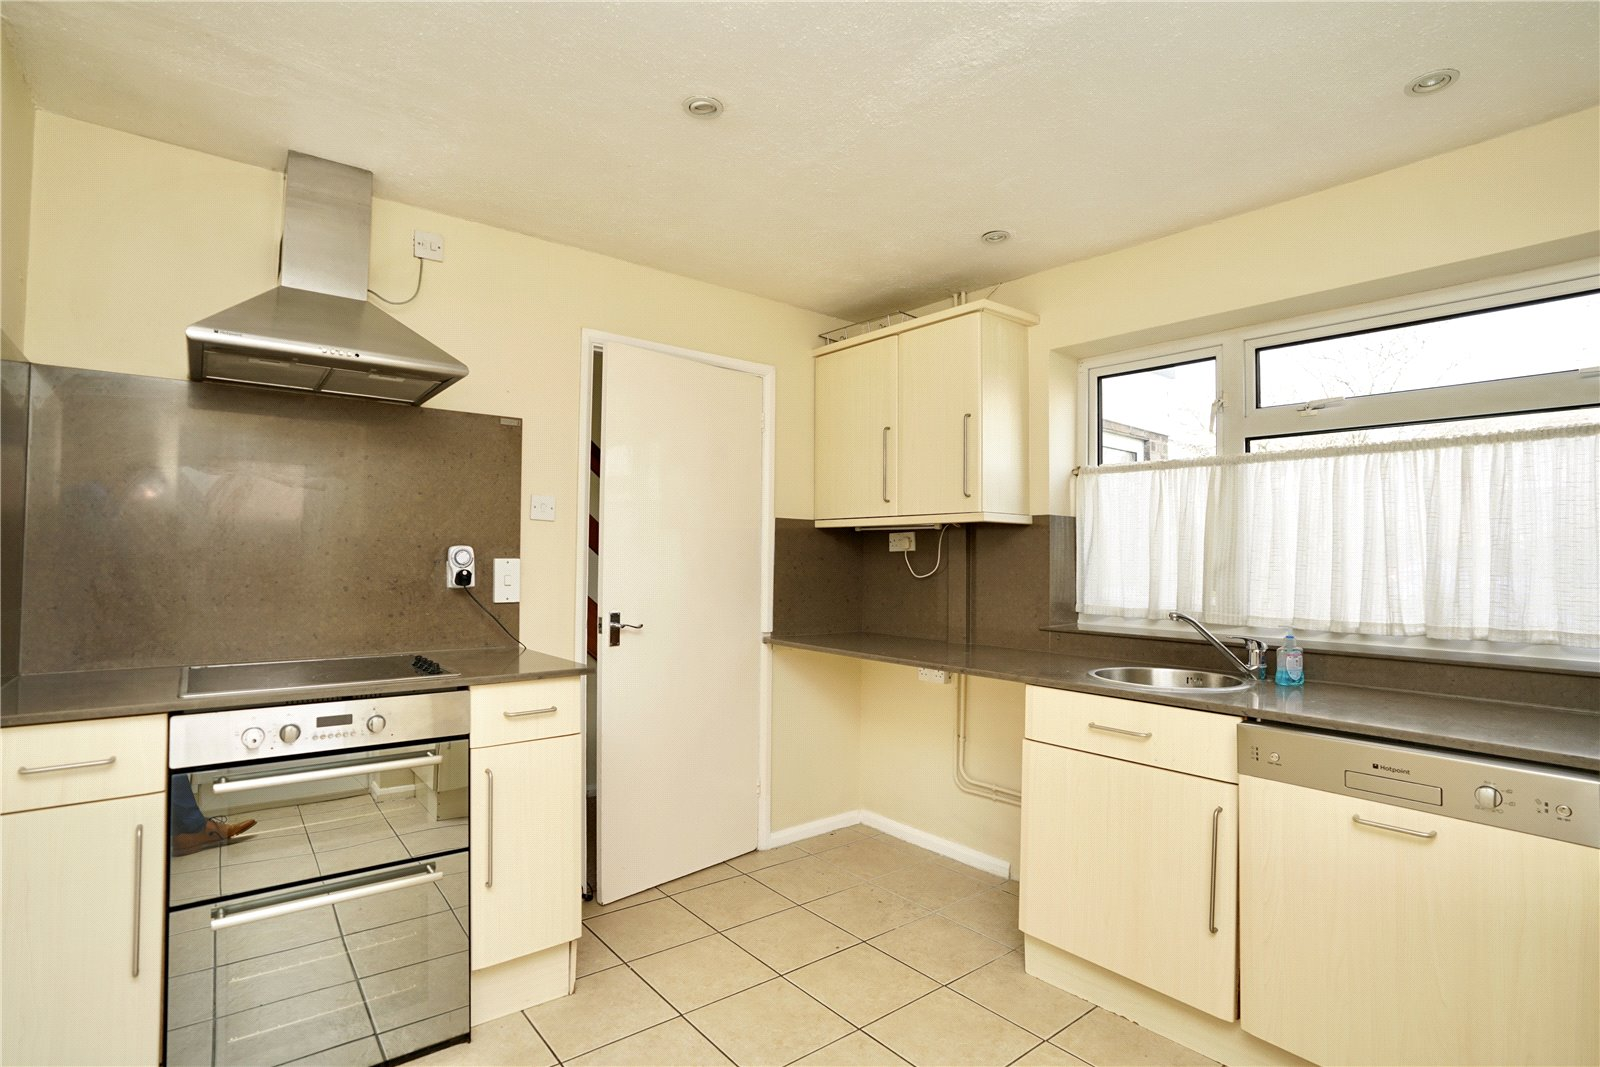 4 bed house for sale in Manor Close, Great Staughton  - Property Image 7